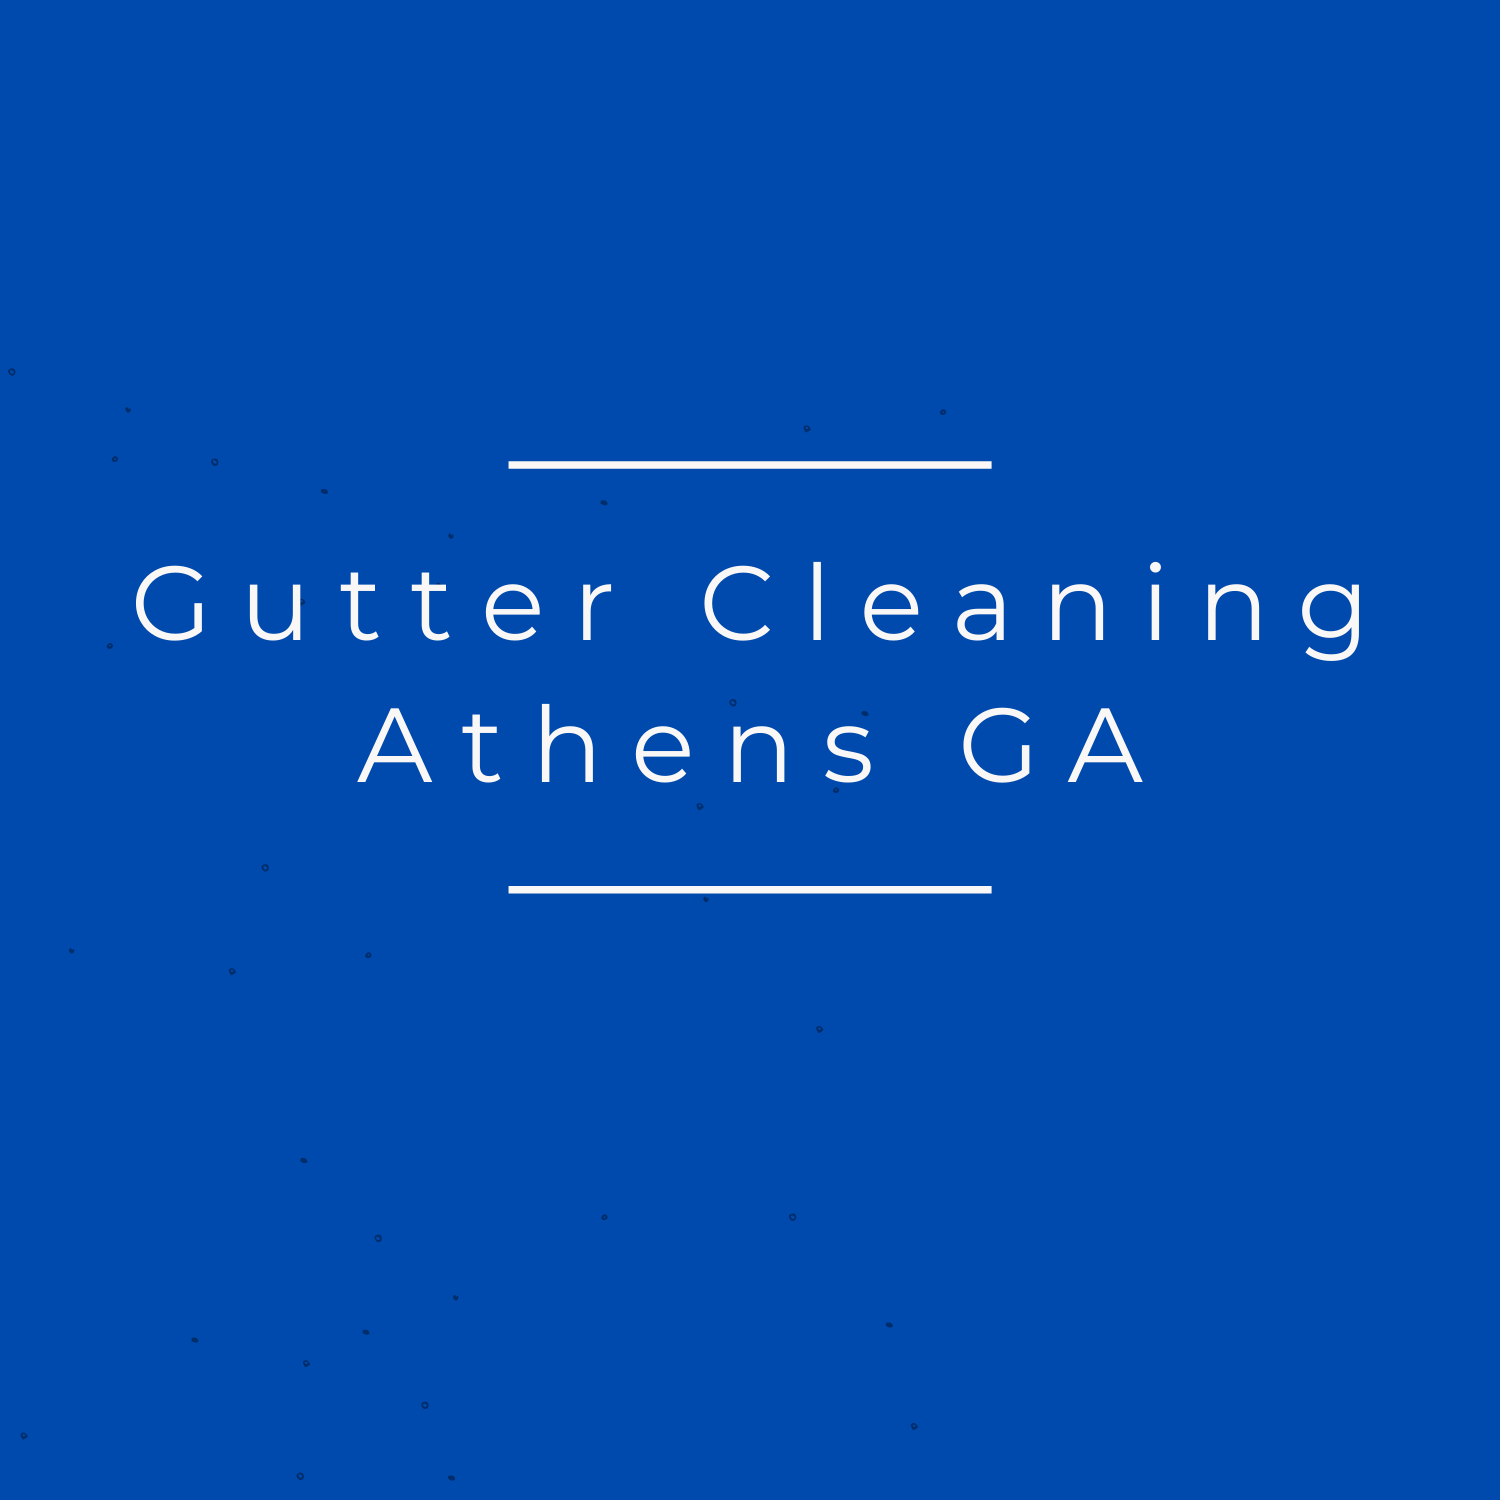 Gutter Cleaning Athens GA